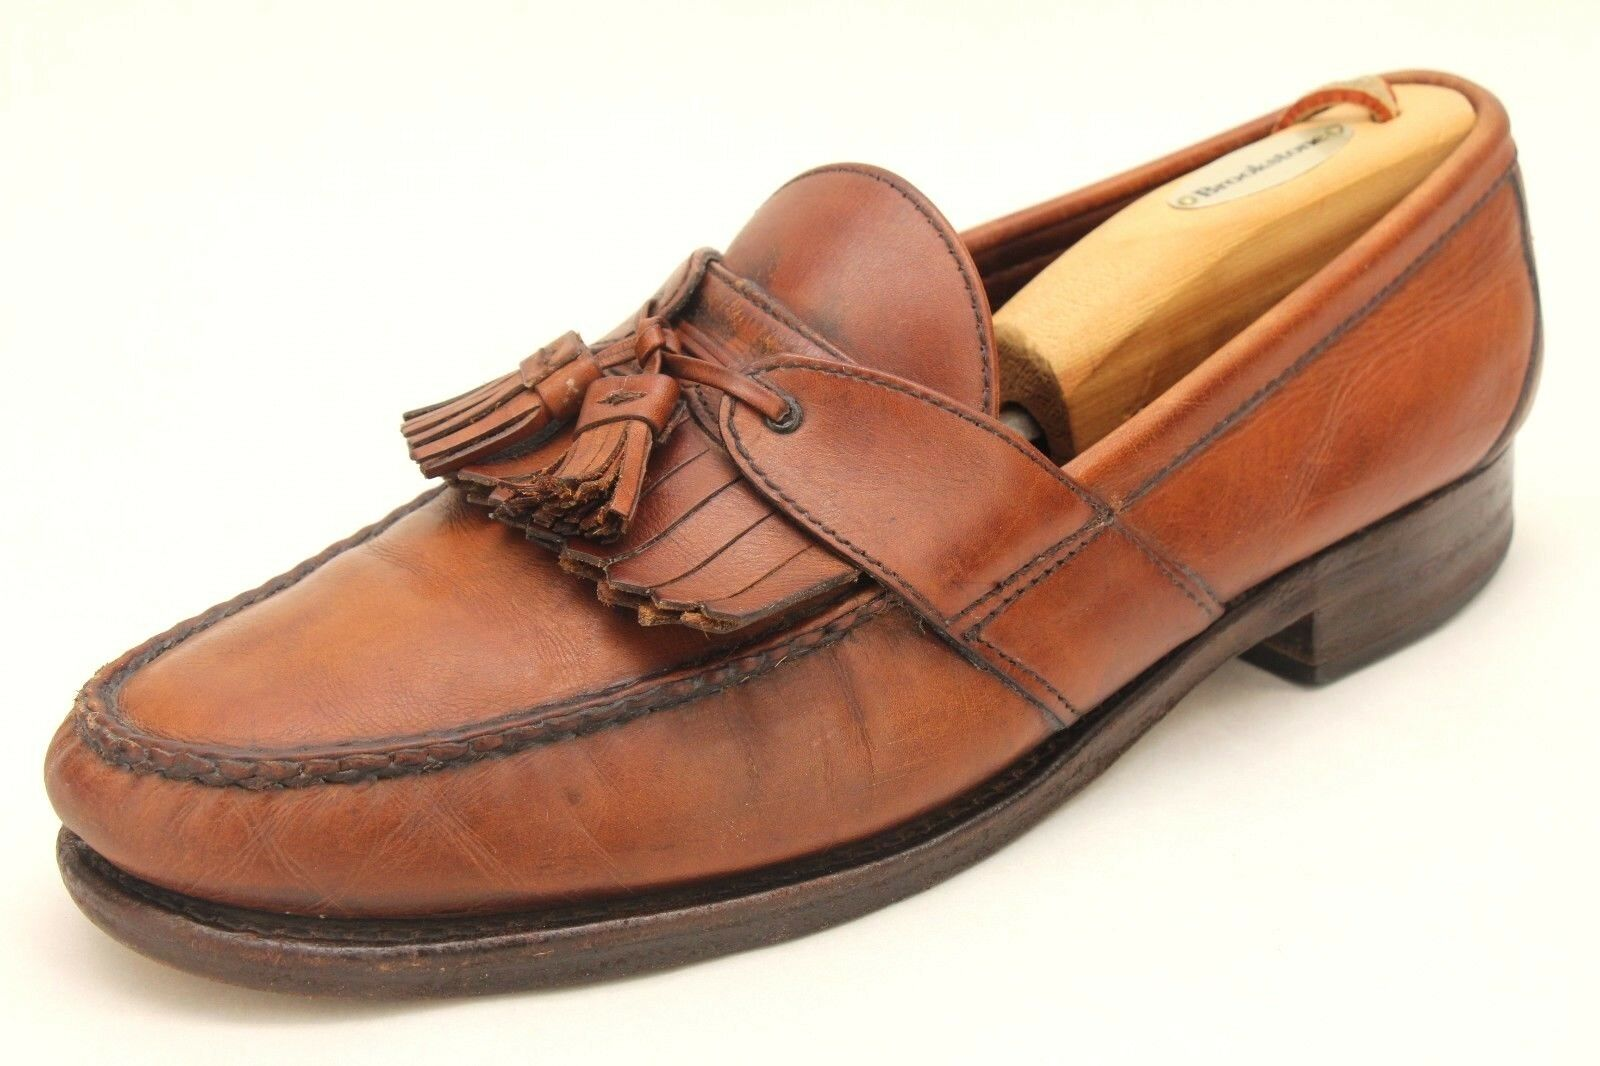 Allen Edmonds Enfield marron Leather Kiltie Tassel Loafers Taille 10 C Narrow